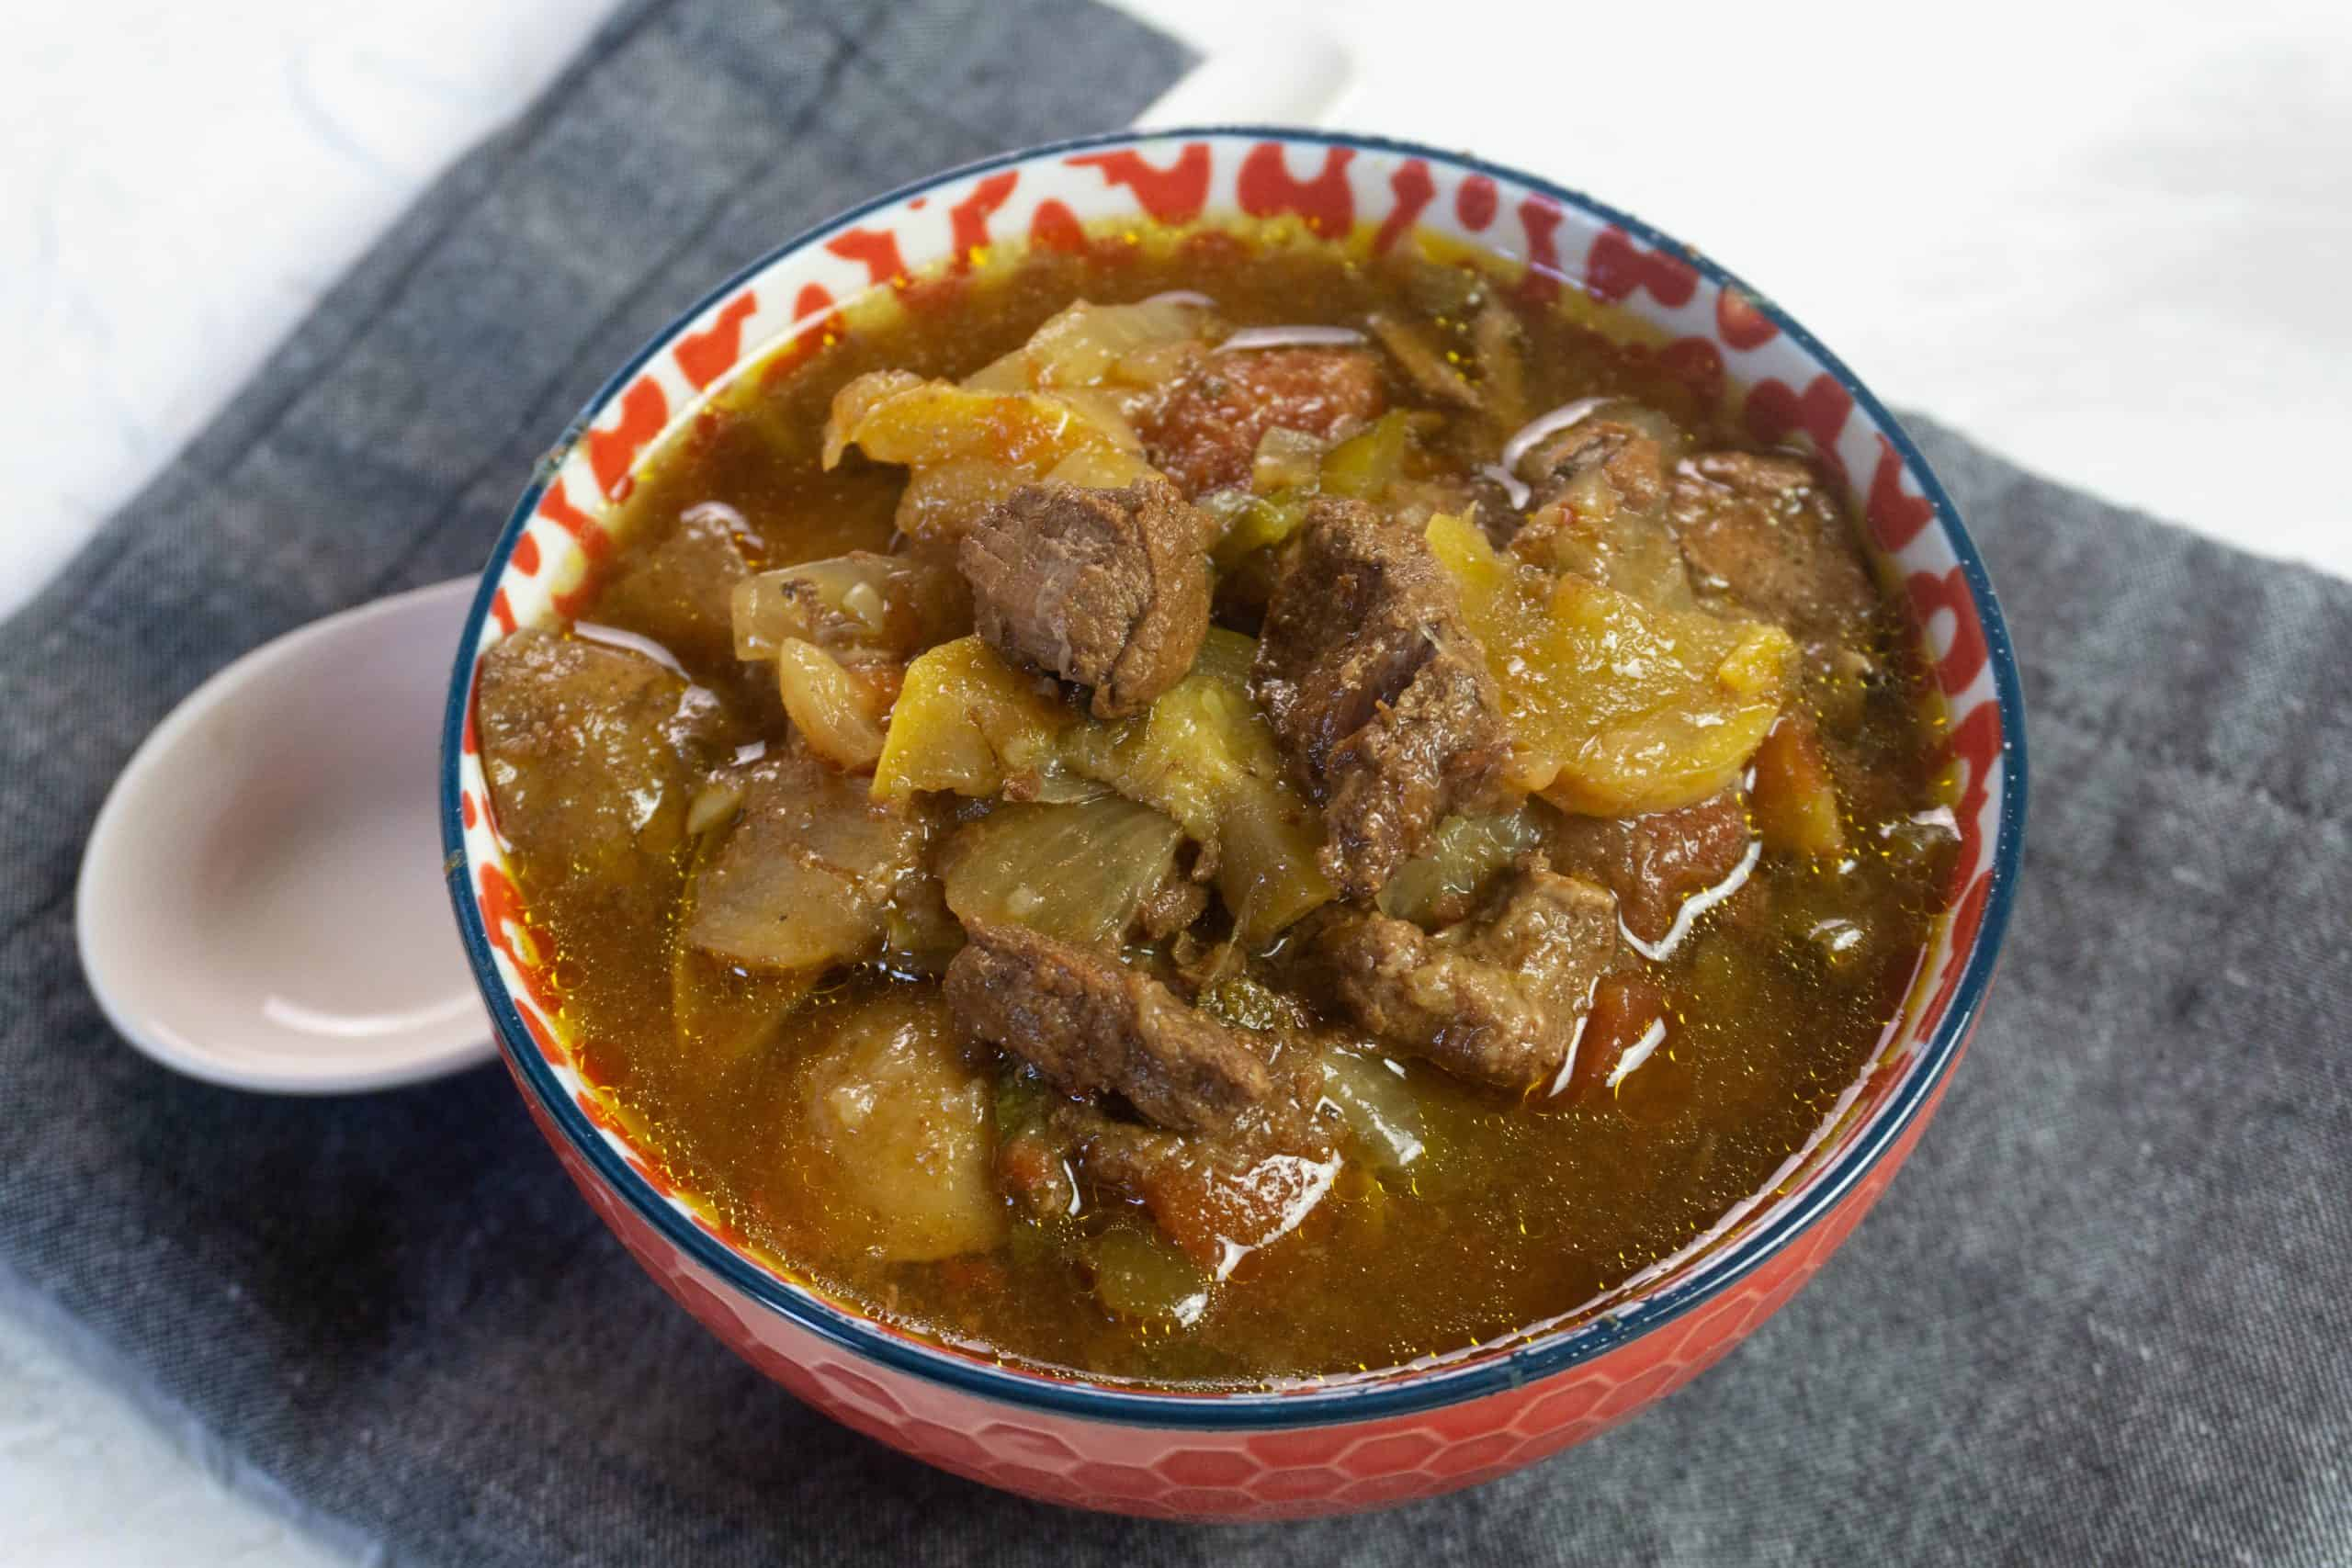 Tuscan Beef Stew in a bowl